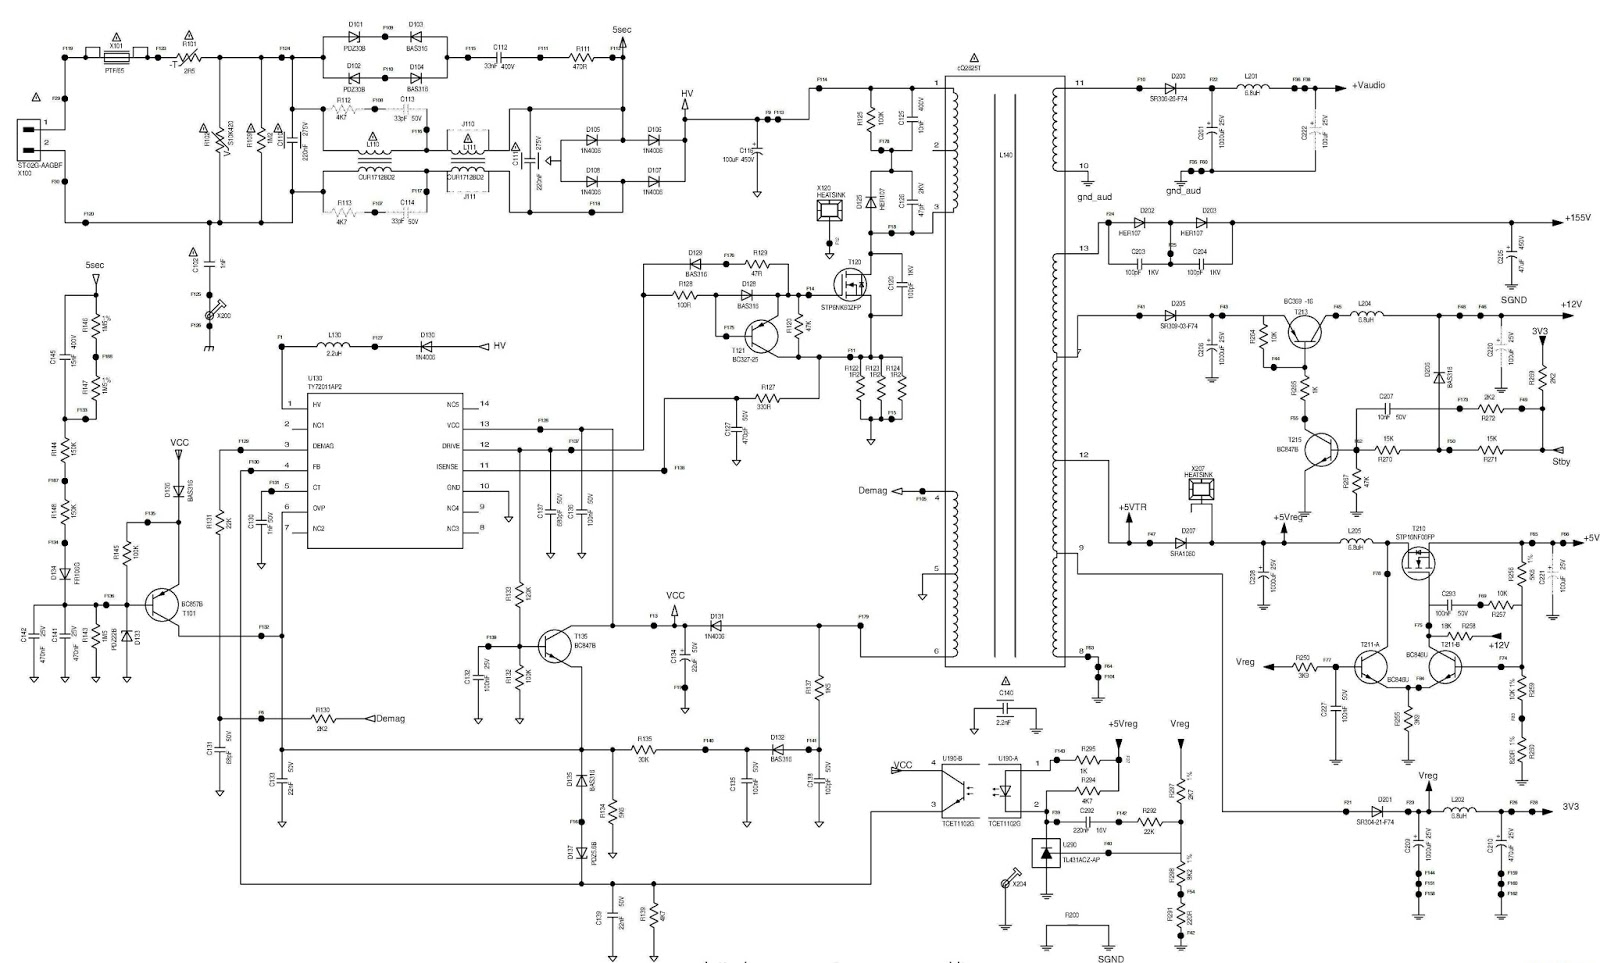 Smps Schematic Diagram 1986 Ford F150 Starter Solenoid Wiring Electro Help Philips 20 Quot Lcd Tv Circuit